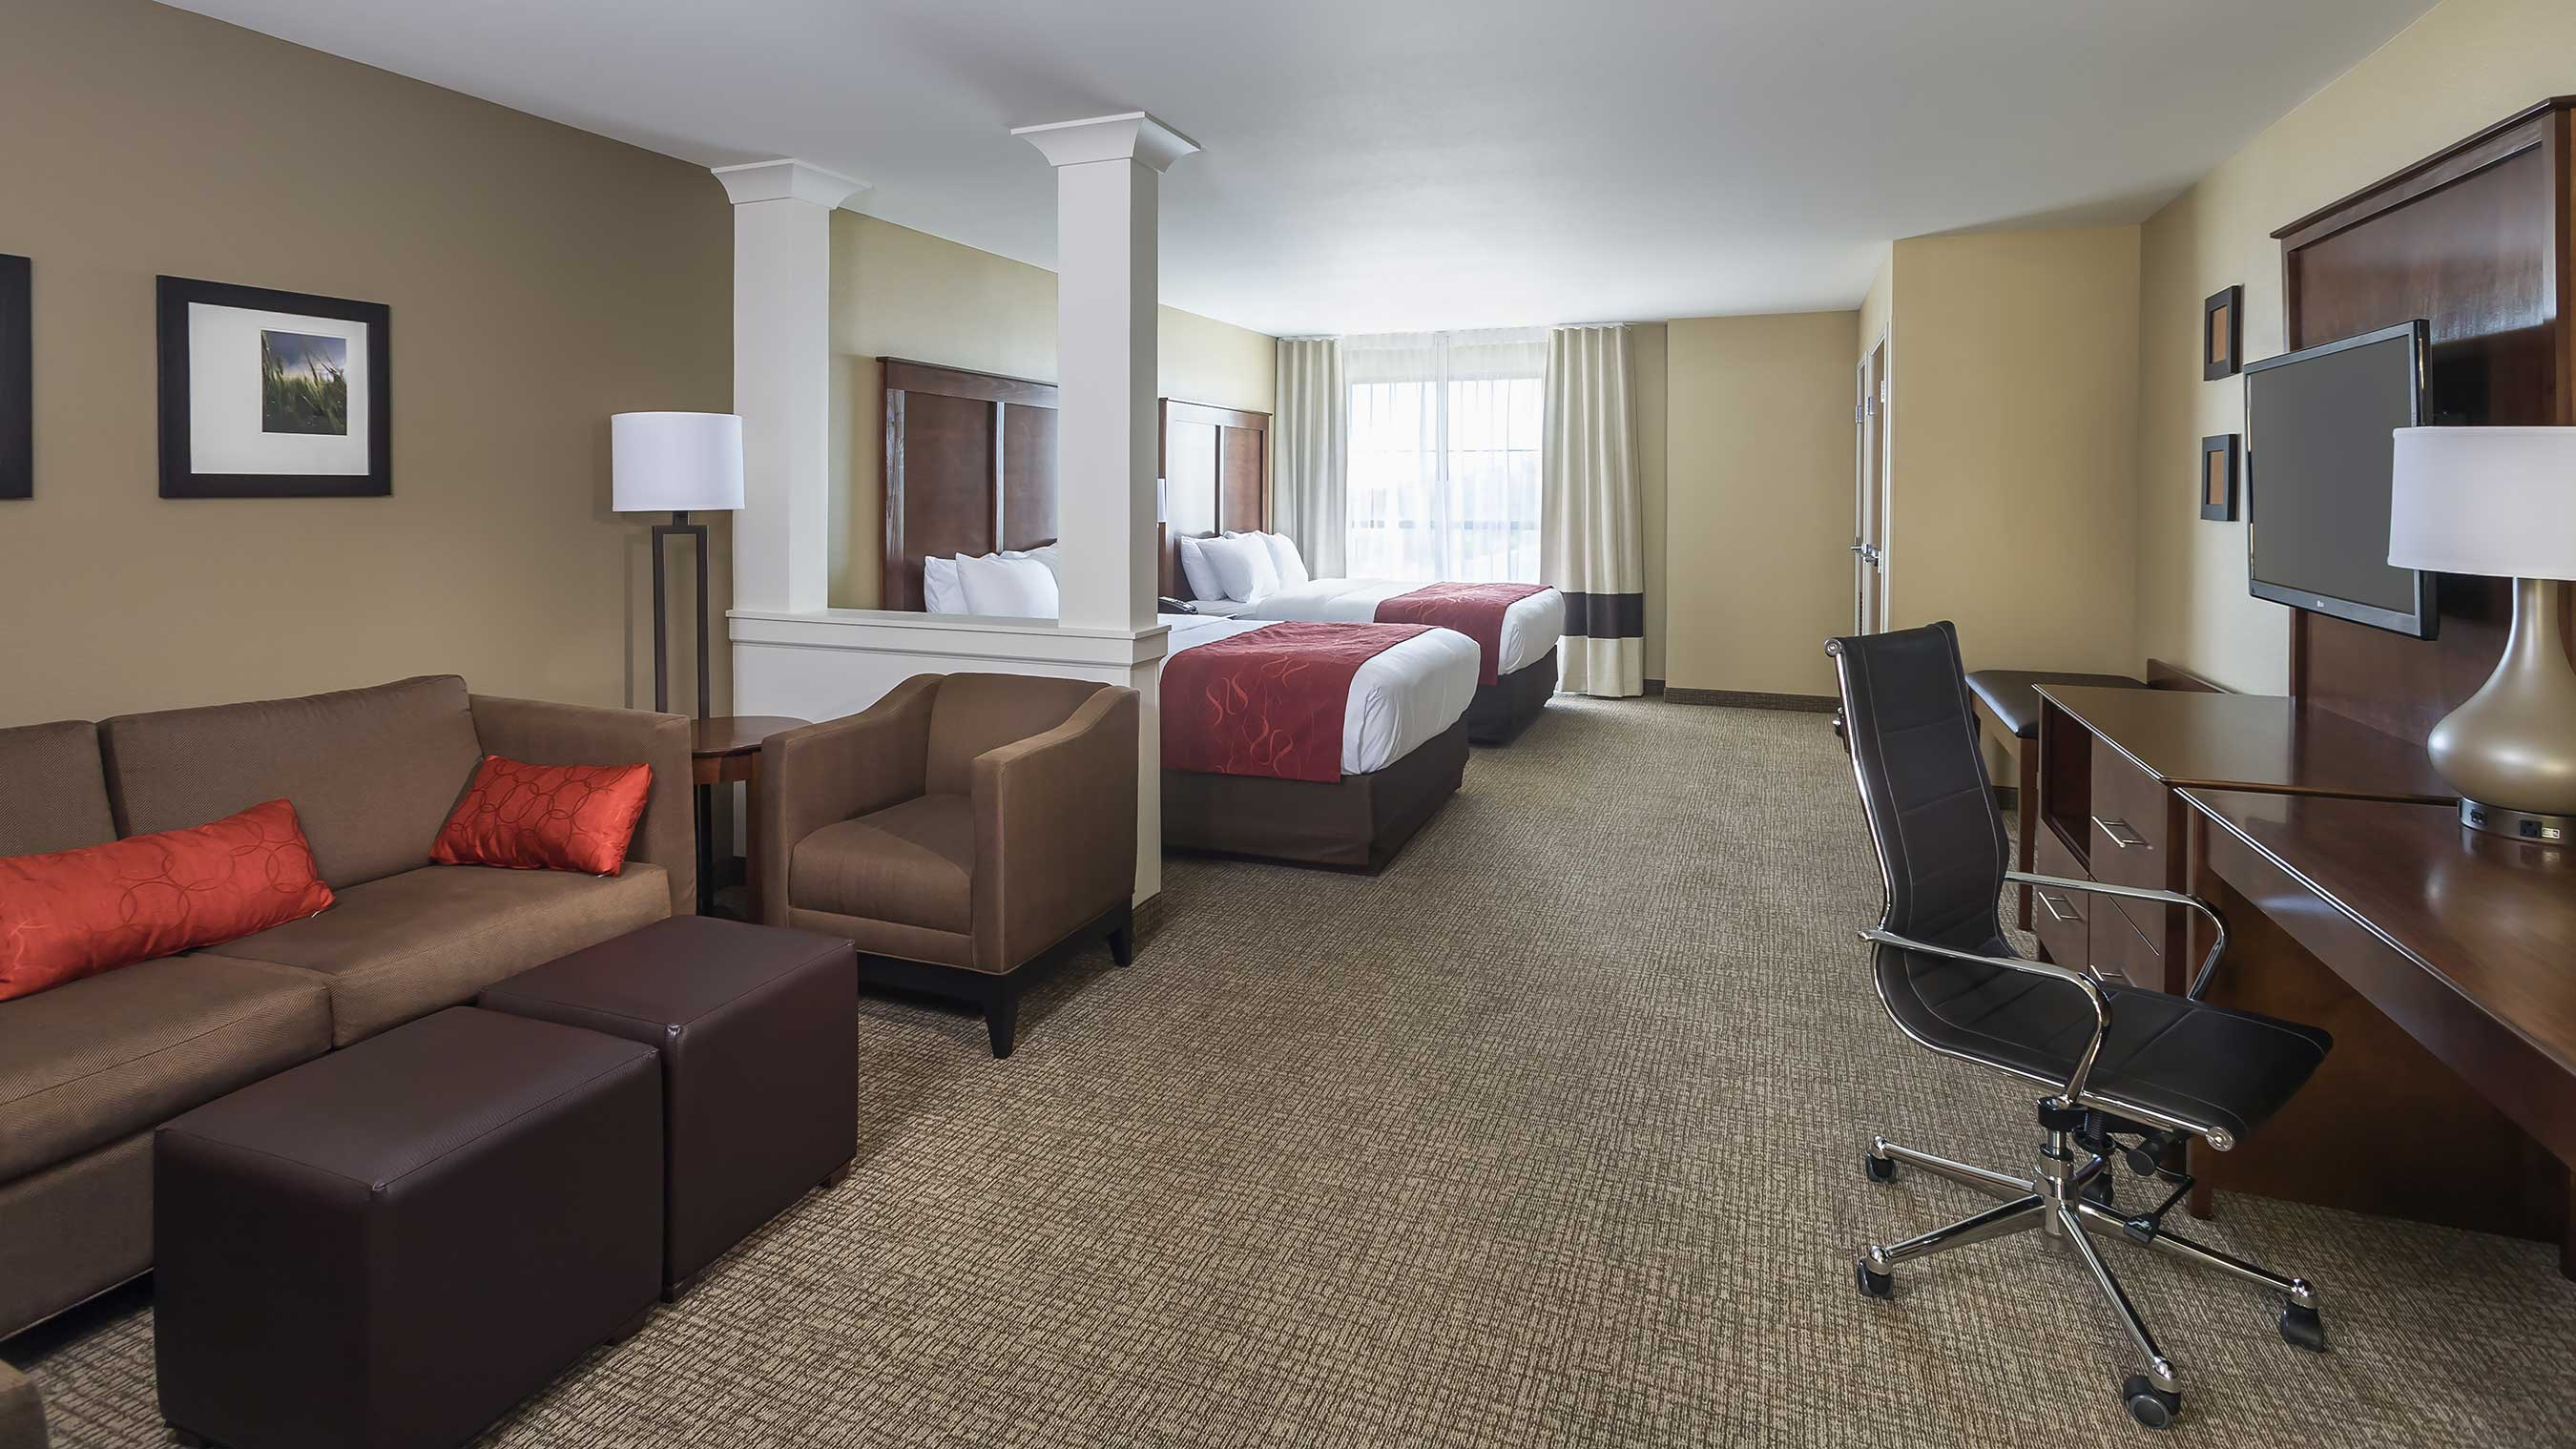 Enjoy your stay in one of the Comfort Hotels guest rooms!